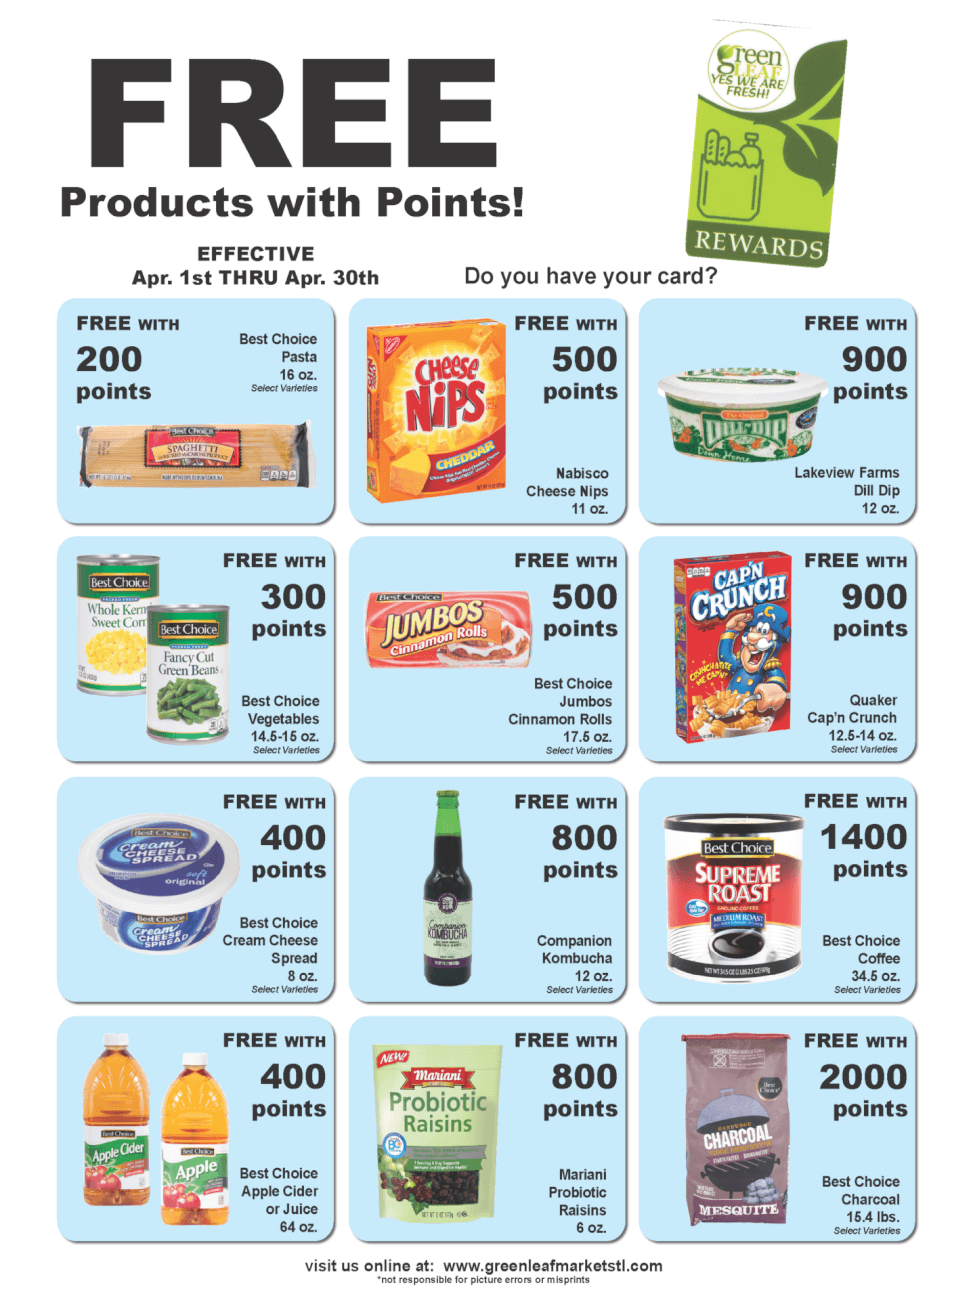 Free groceries with points in April at GreenLeaf Market St. Louis